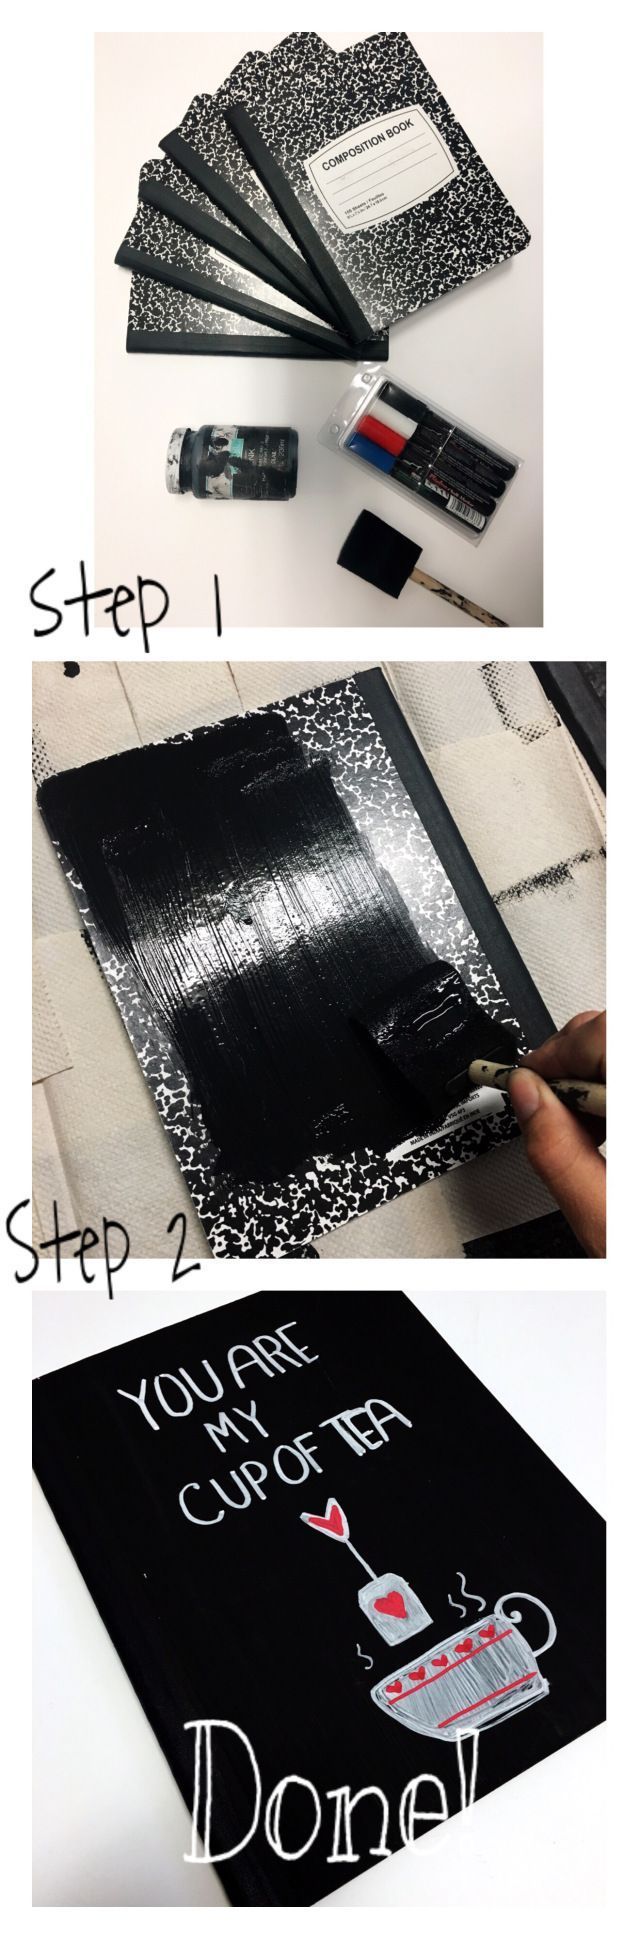 Cheap ways to decorate your notebooks for school! #chalkboard paint